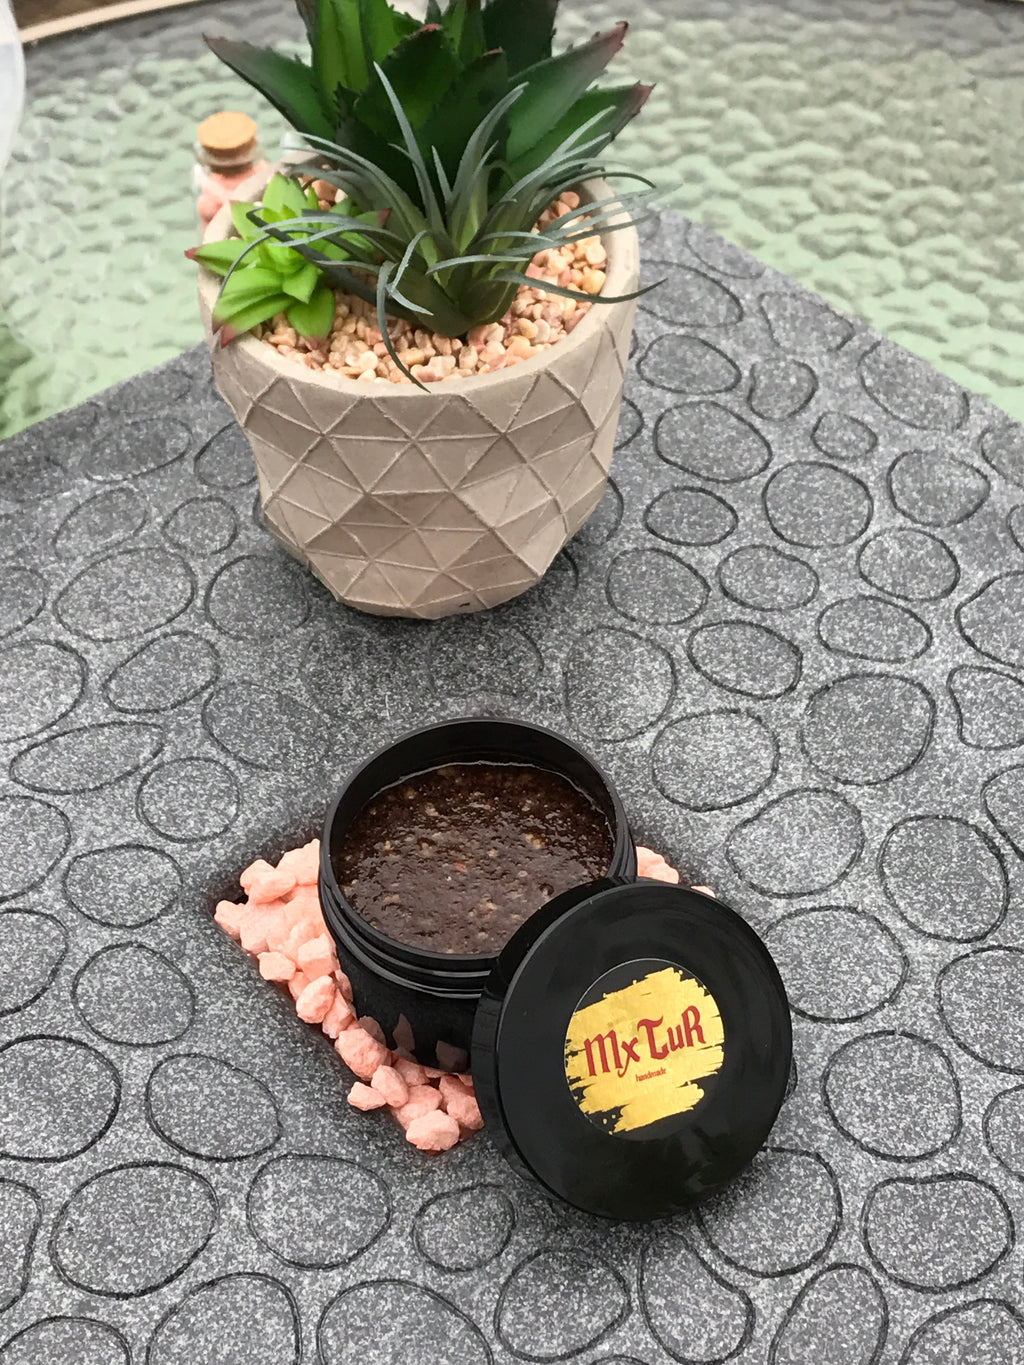 Kofje Face & Body Scrub -Mixtur,  Kofje Face & Body Scrub Mxtur, Face & Body Scrub Masks, Scrubs, Soaps, Kofje Face & Body Scrub skincare, Kofje Face & Body Scrub natural, [product_Type] Handcrafted